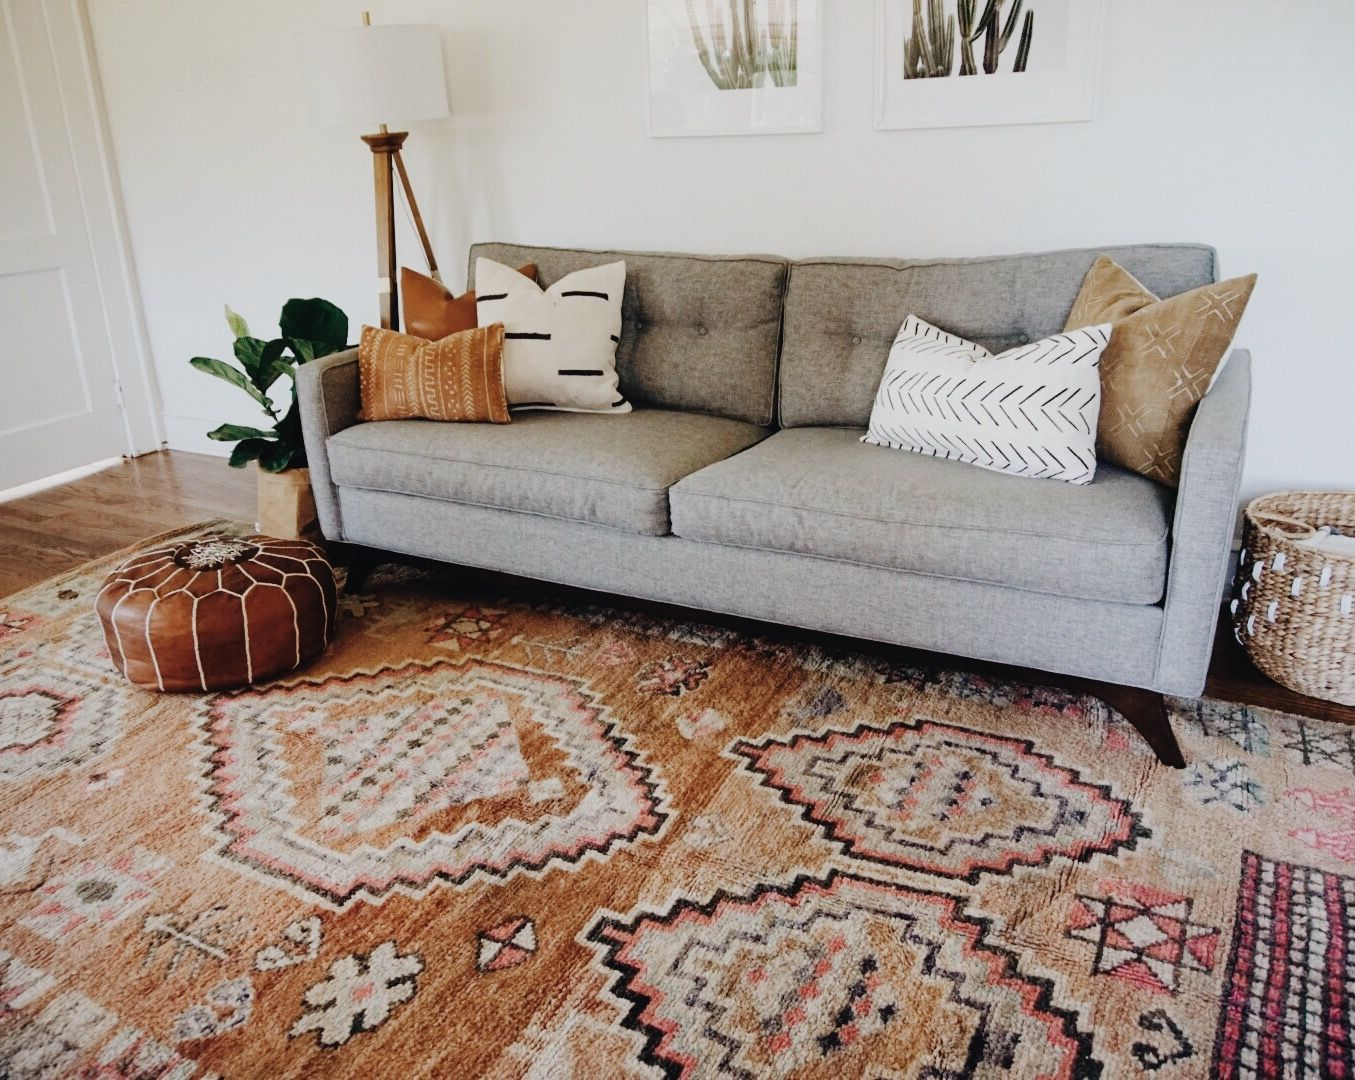 Brilliant Gray Midcentury Modern Couch With Vintage Moroccan Area Rug Onthecornerstone Fun Painted Chair Ideas Images Onthecornerstoneorg